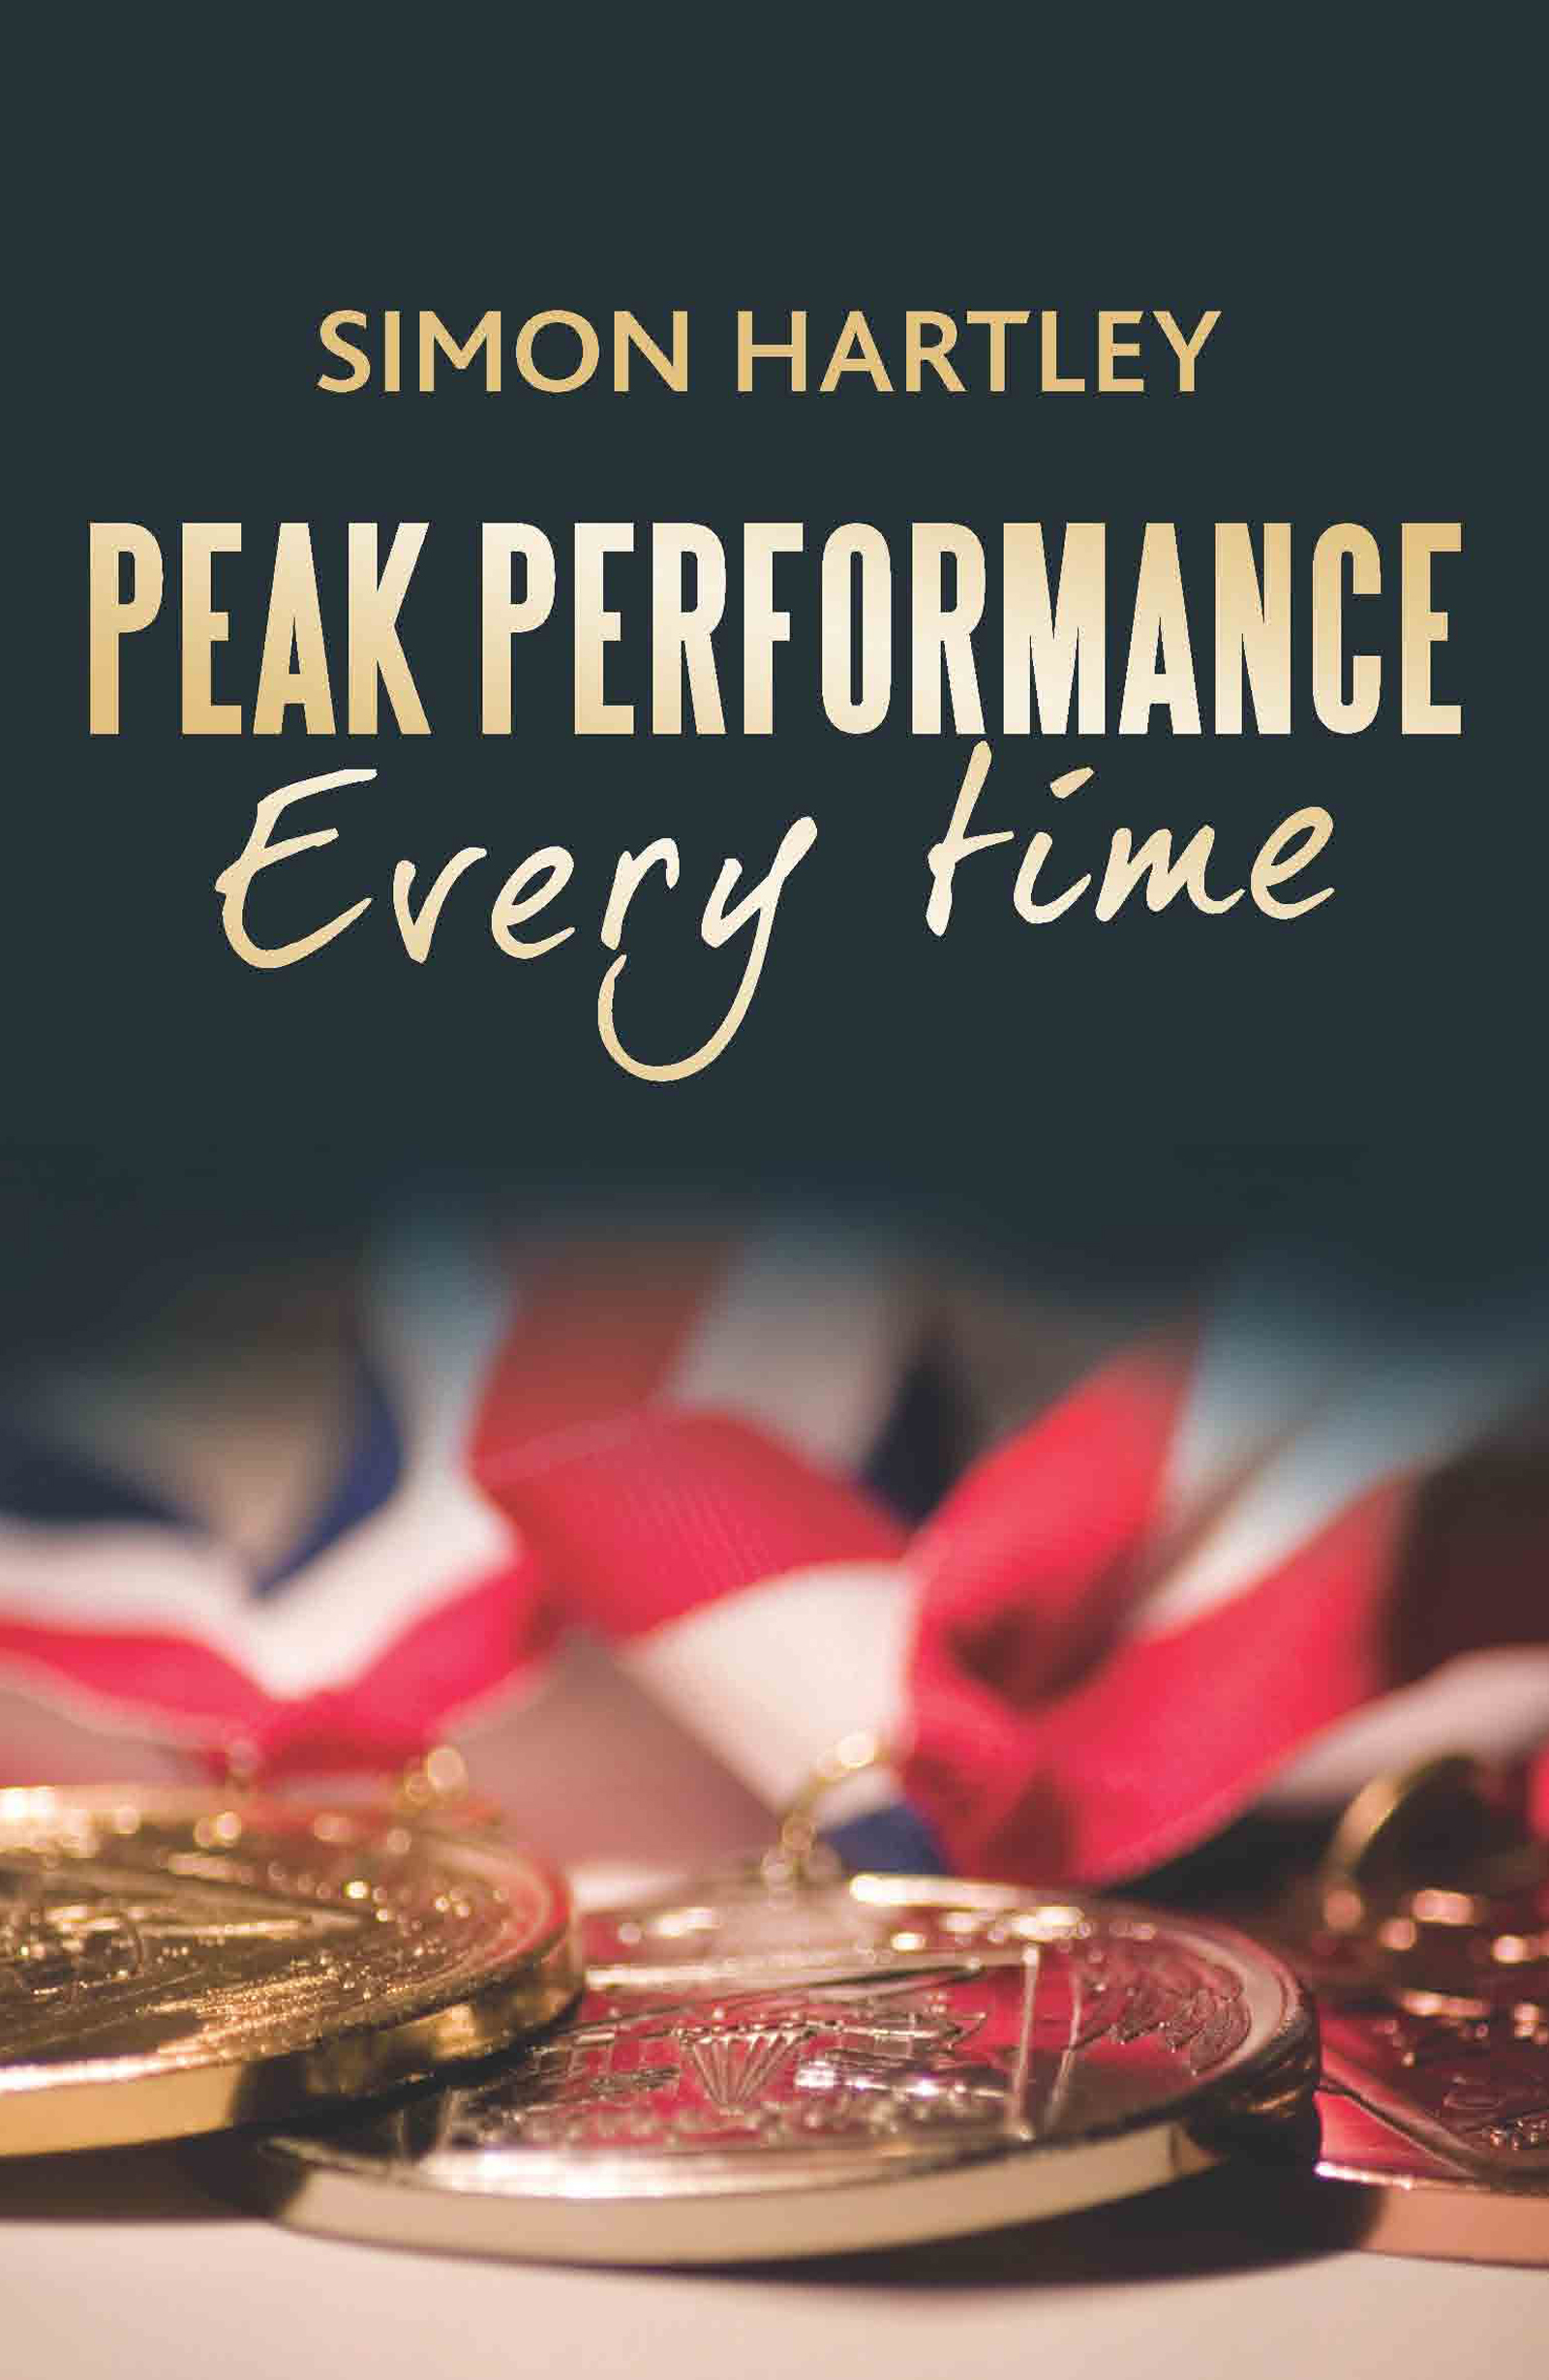 Peak Performance Every Time (Paperback) book cover